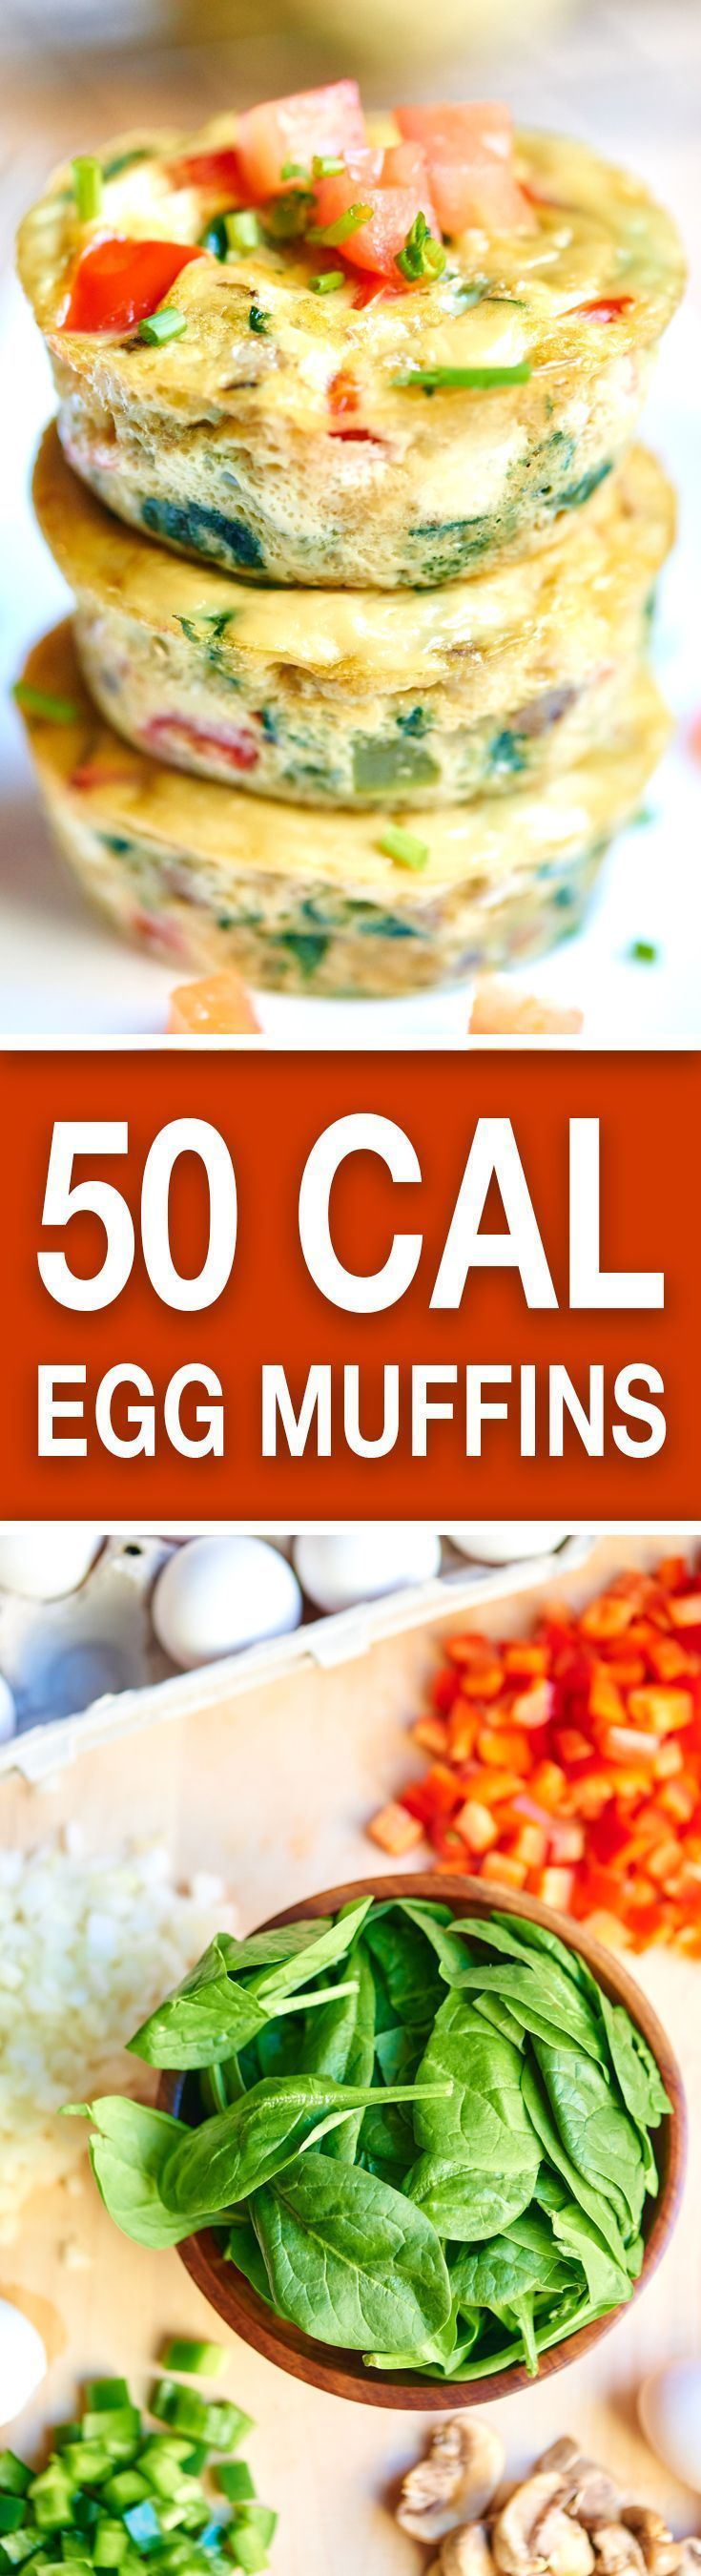 These healthy egg muffin cups can be made in advance, have less than 50 calories per muffin, and are packed with tons of protein and veggies! http://showmetheyummy.com